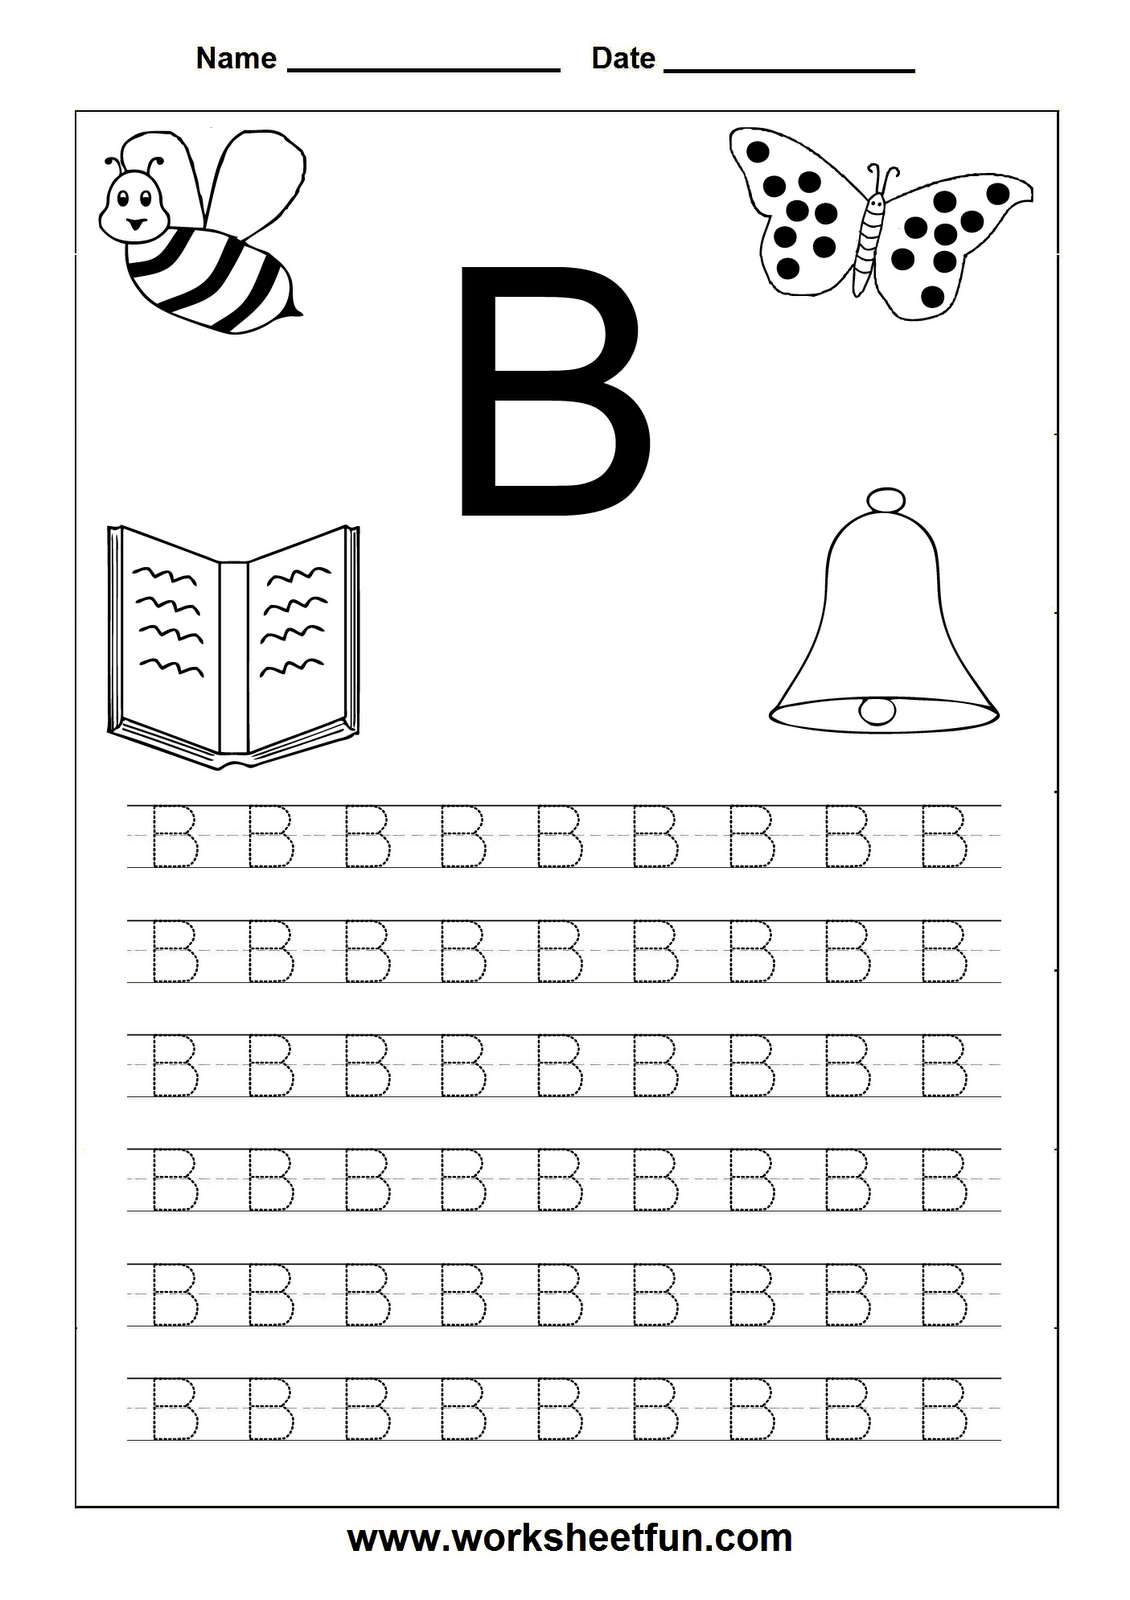 Worksheet Abc Tracing Worksheets For Kindergarten 1000 images about alphabet on pinterest worksheets preschool and letter worksheets